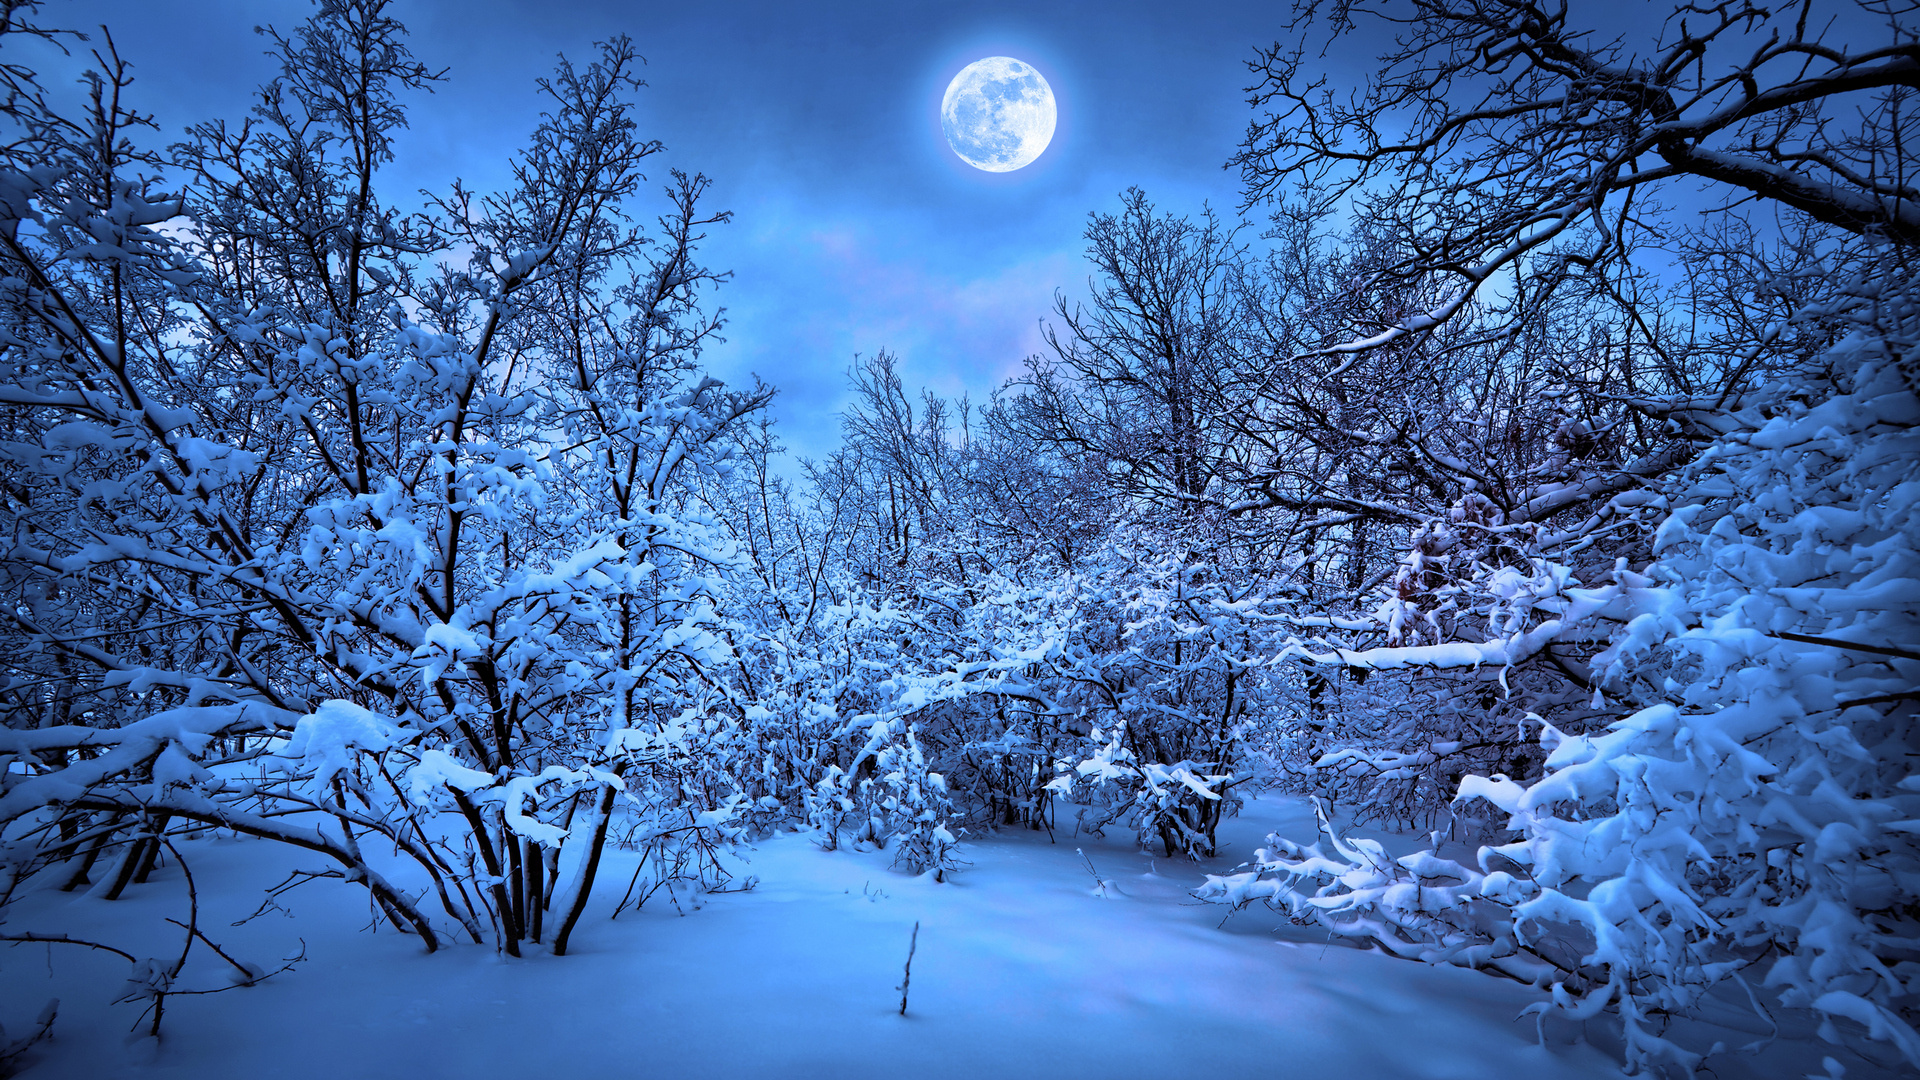 Snow Night Wallpaper Photo Is Cool Wallpapers